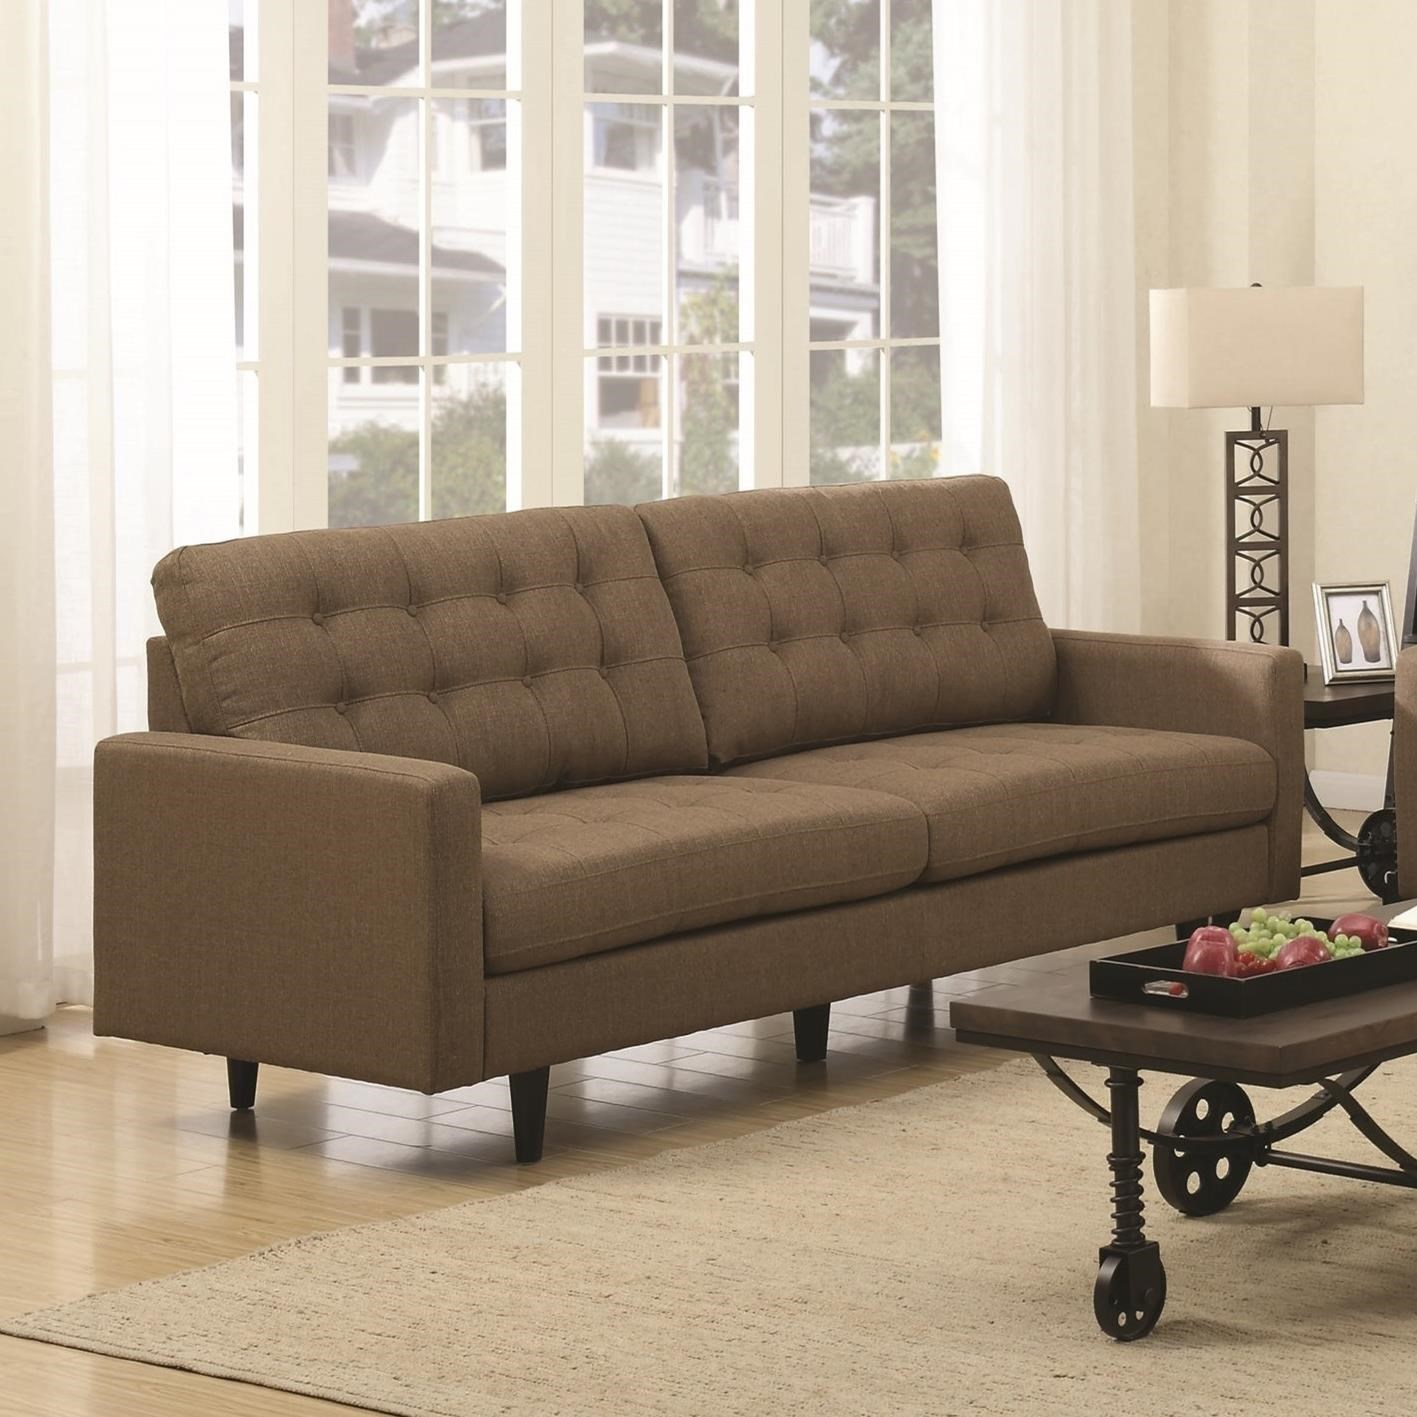 Coaster Kesson Sofa - Item Number: 505377